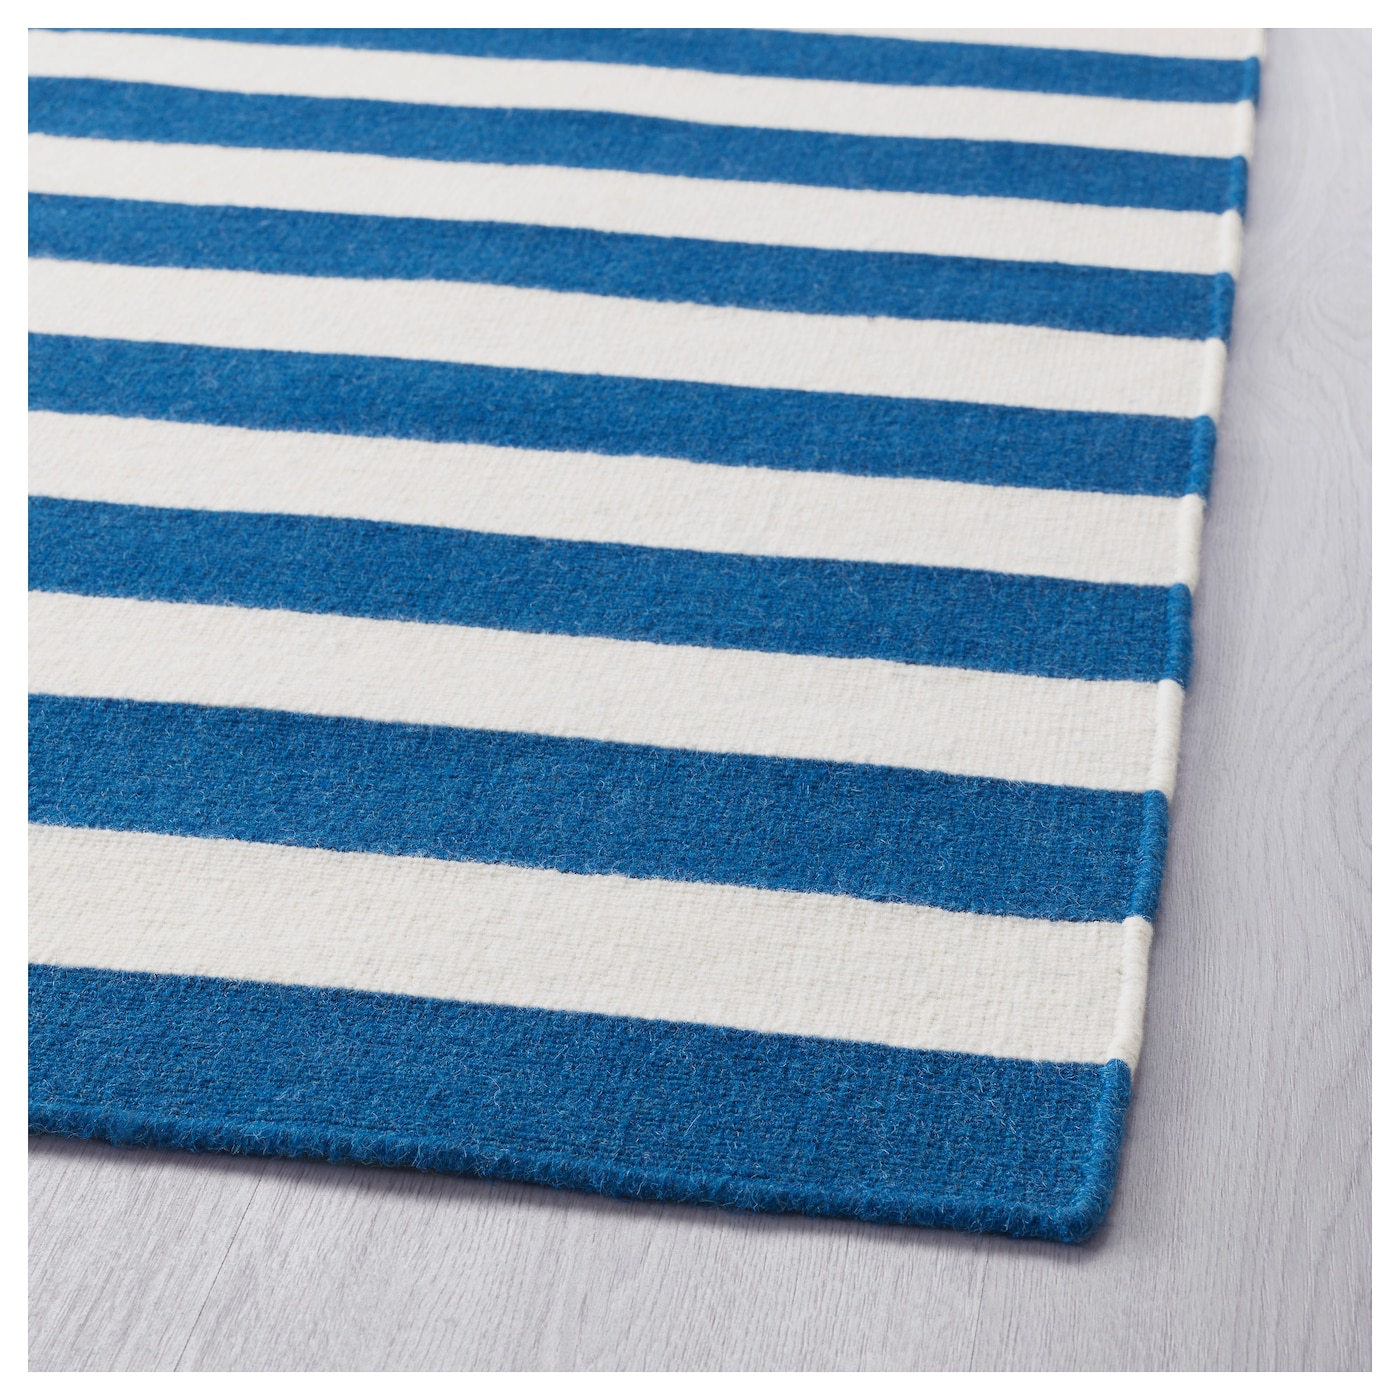 IKEA AVSIKTLIG rug, flatwoven Easy to vacuum thanks to its flat surface.